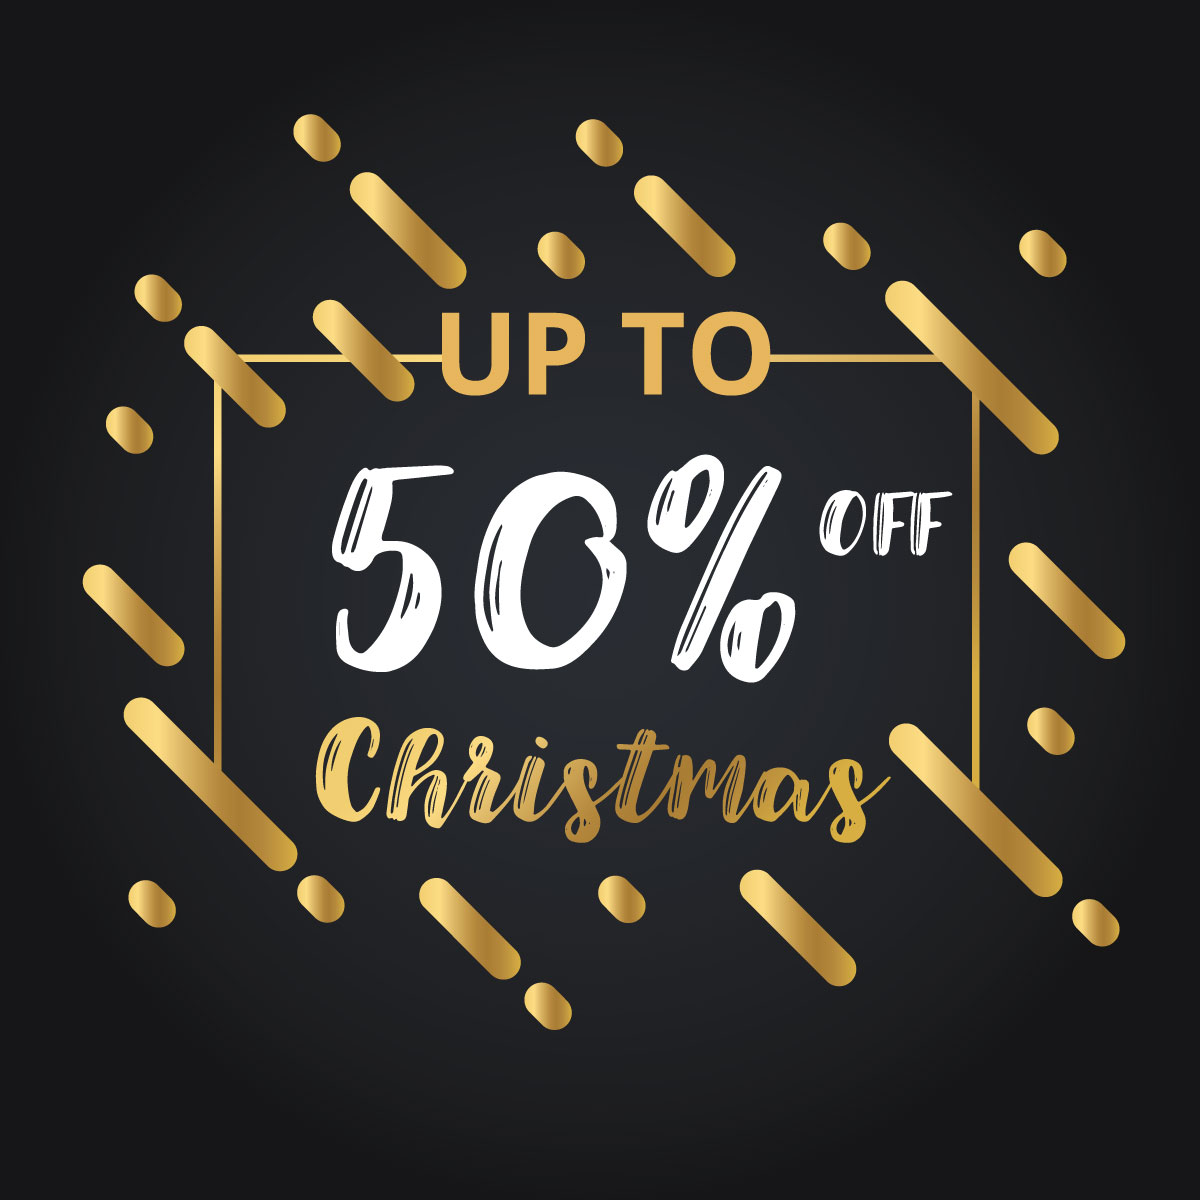 Christmas and New Year 2018 Discount Sale banners example image 4